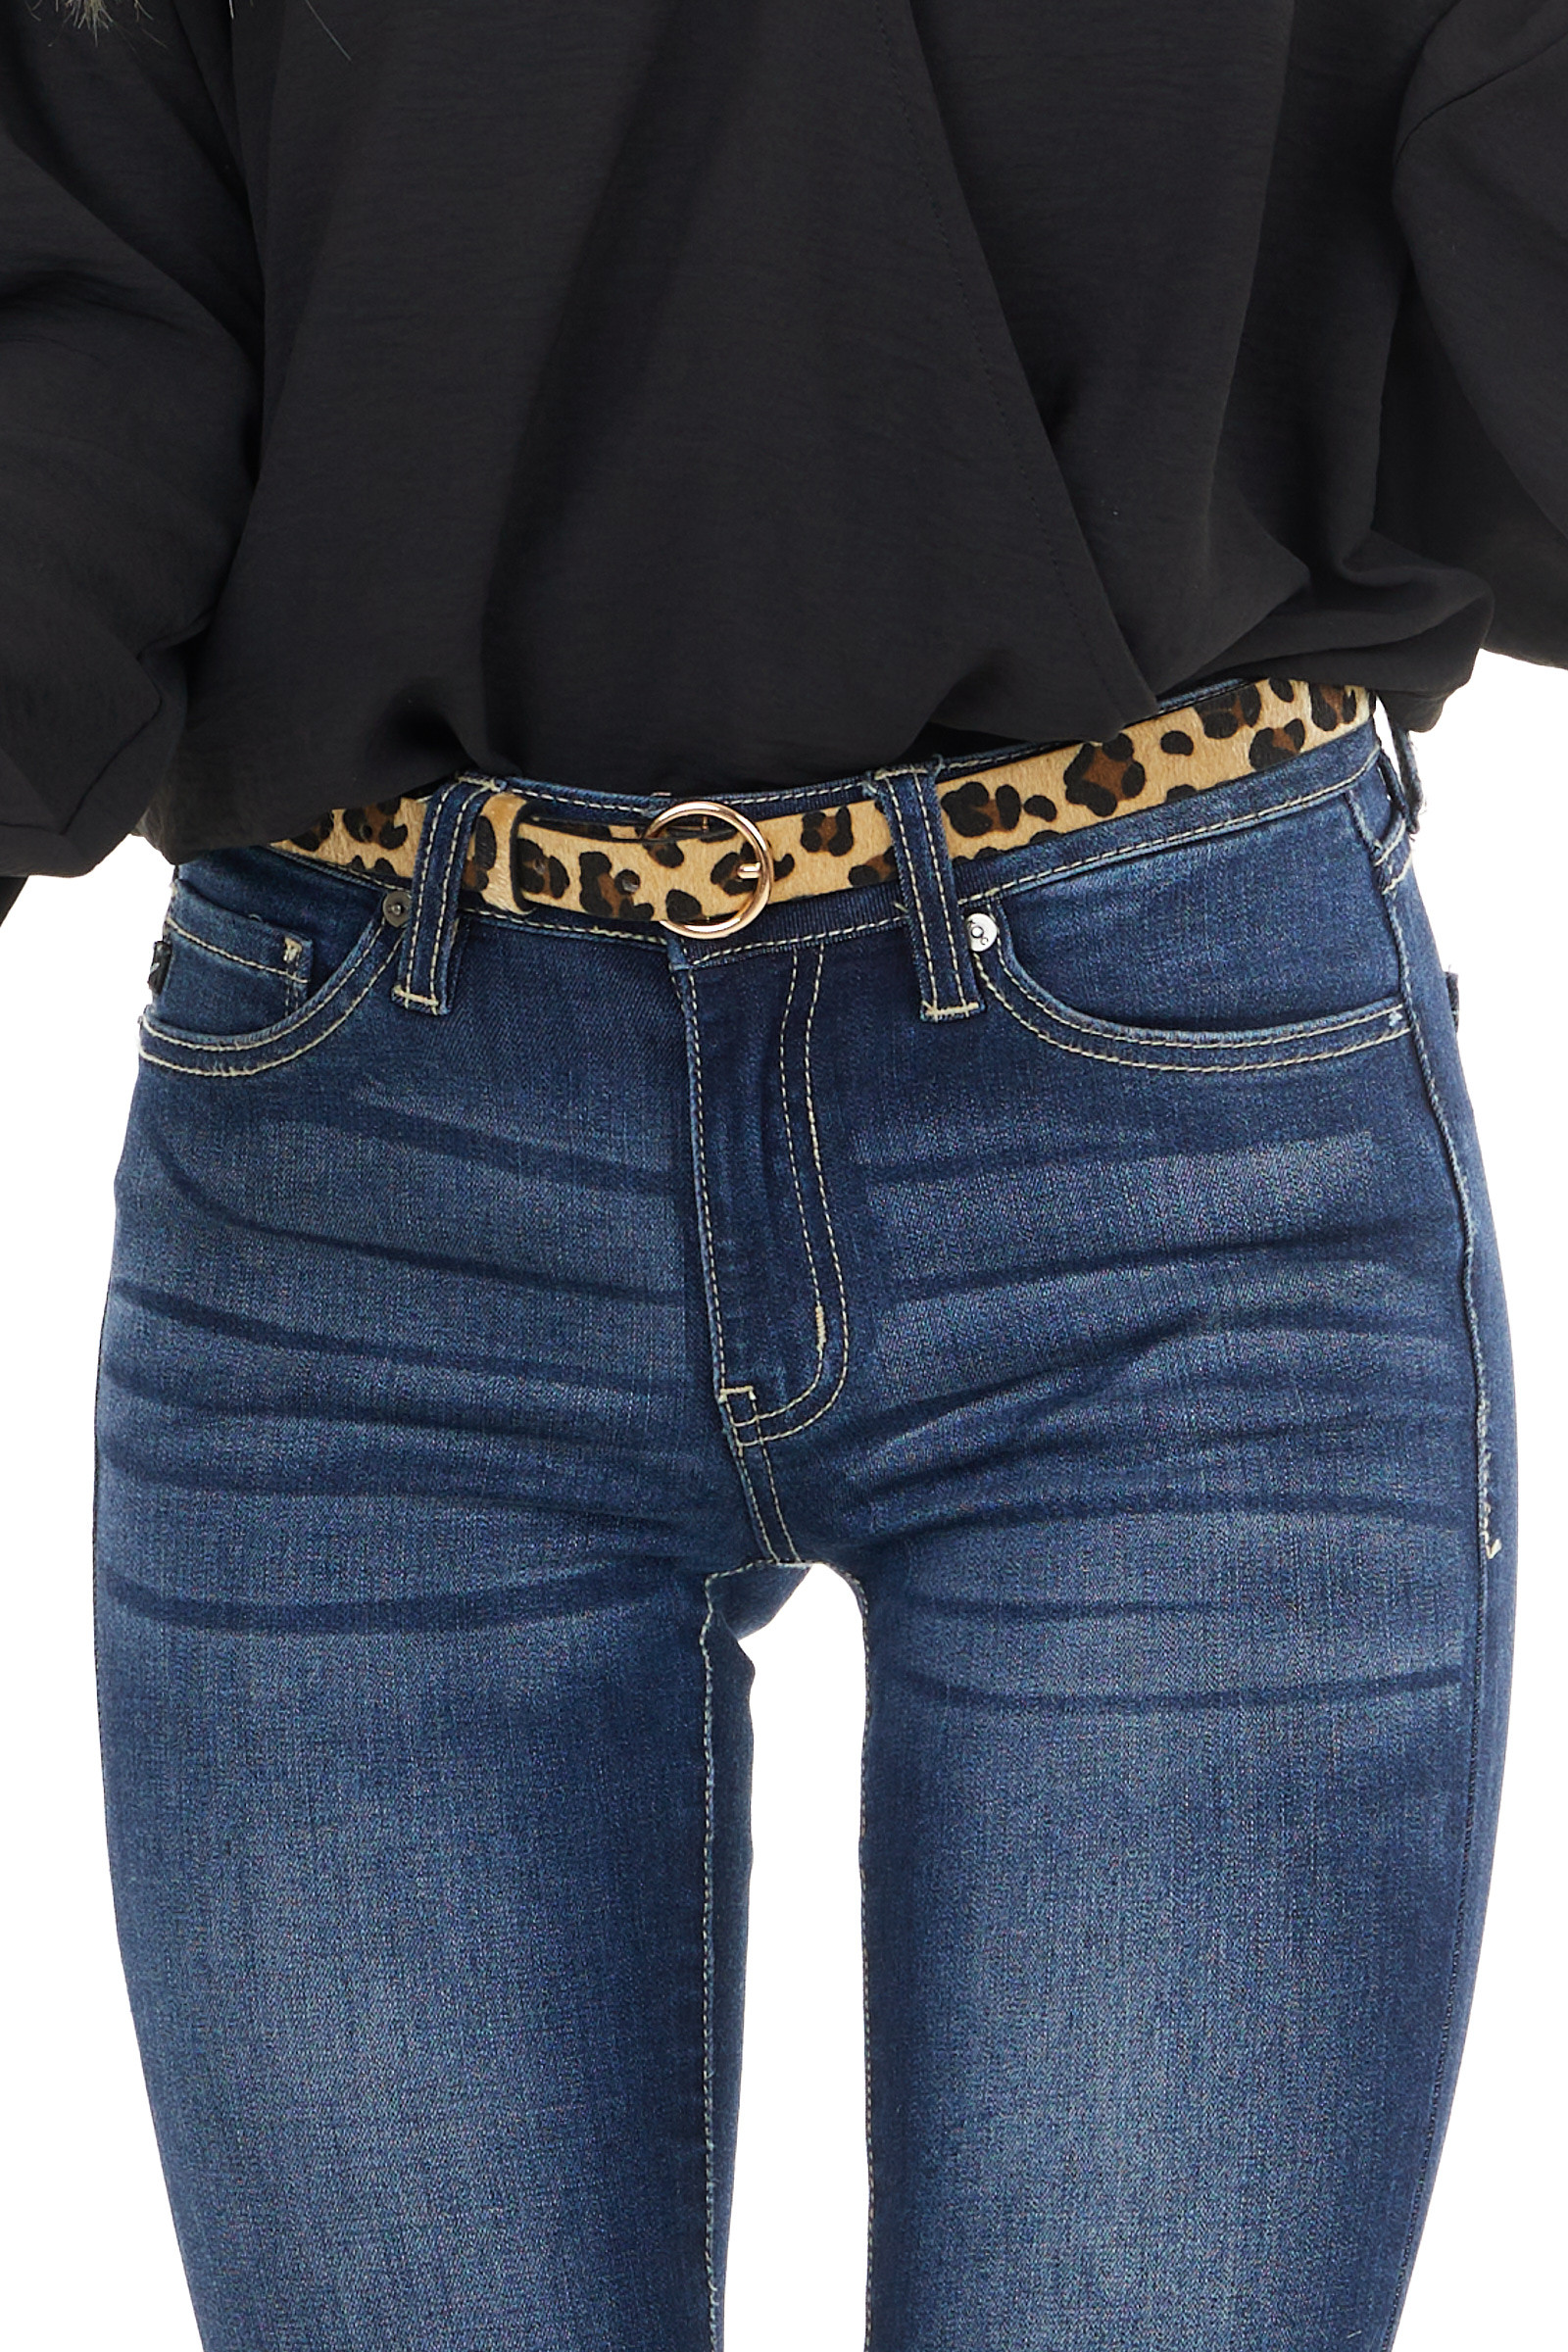 Beige and Black Leopard Print Belt with Gold Ring Buckle